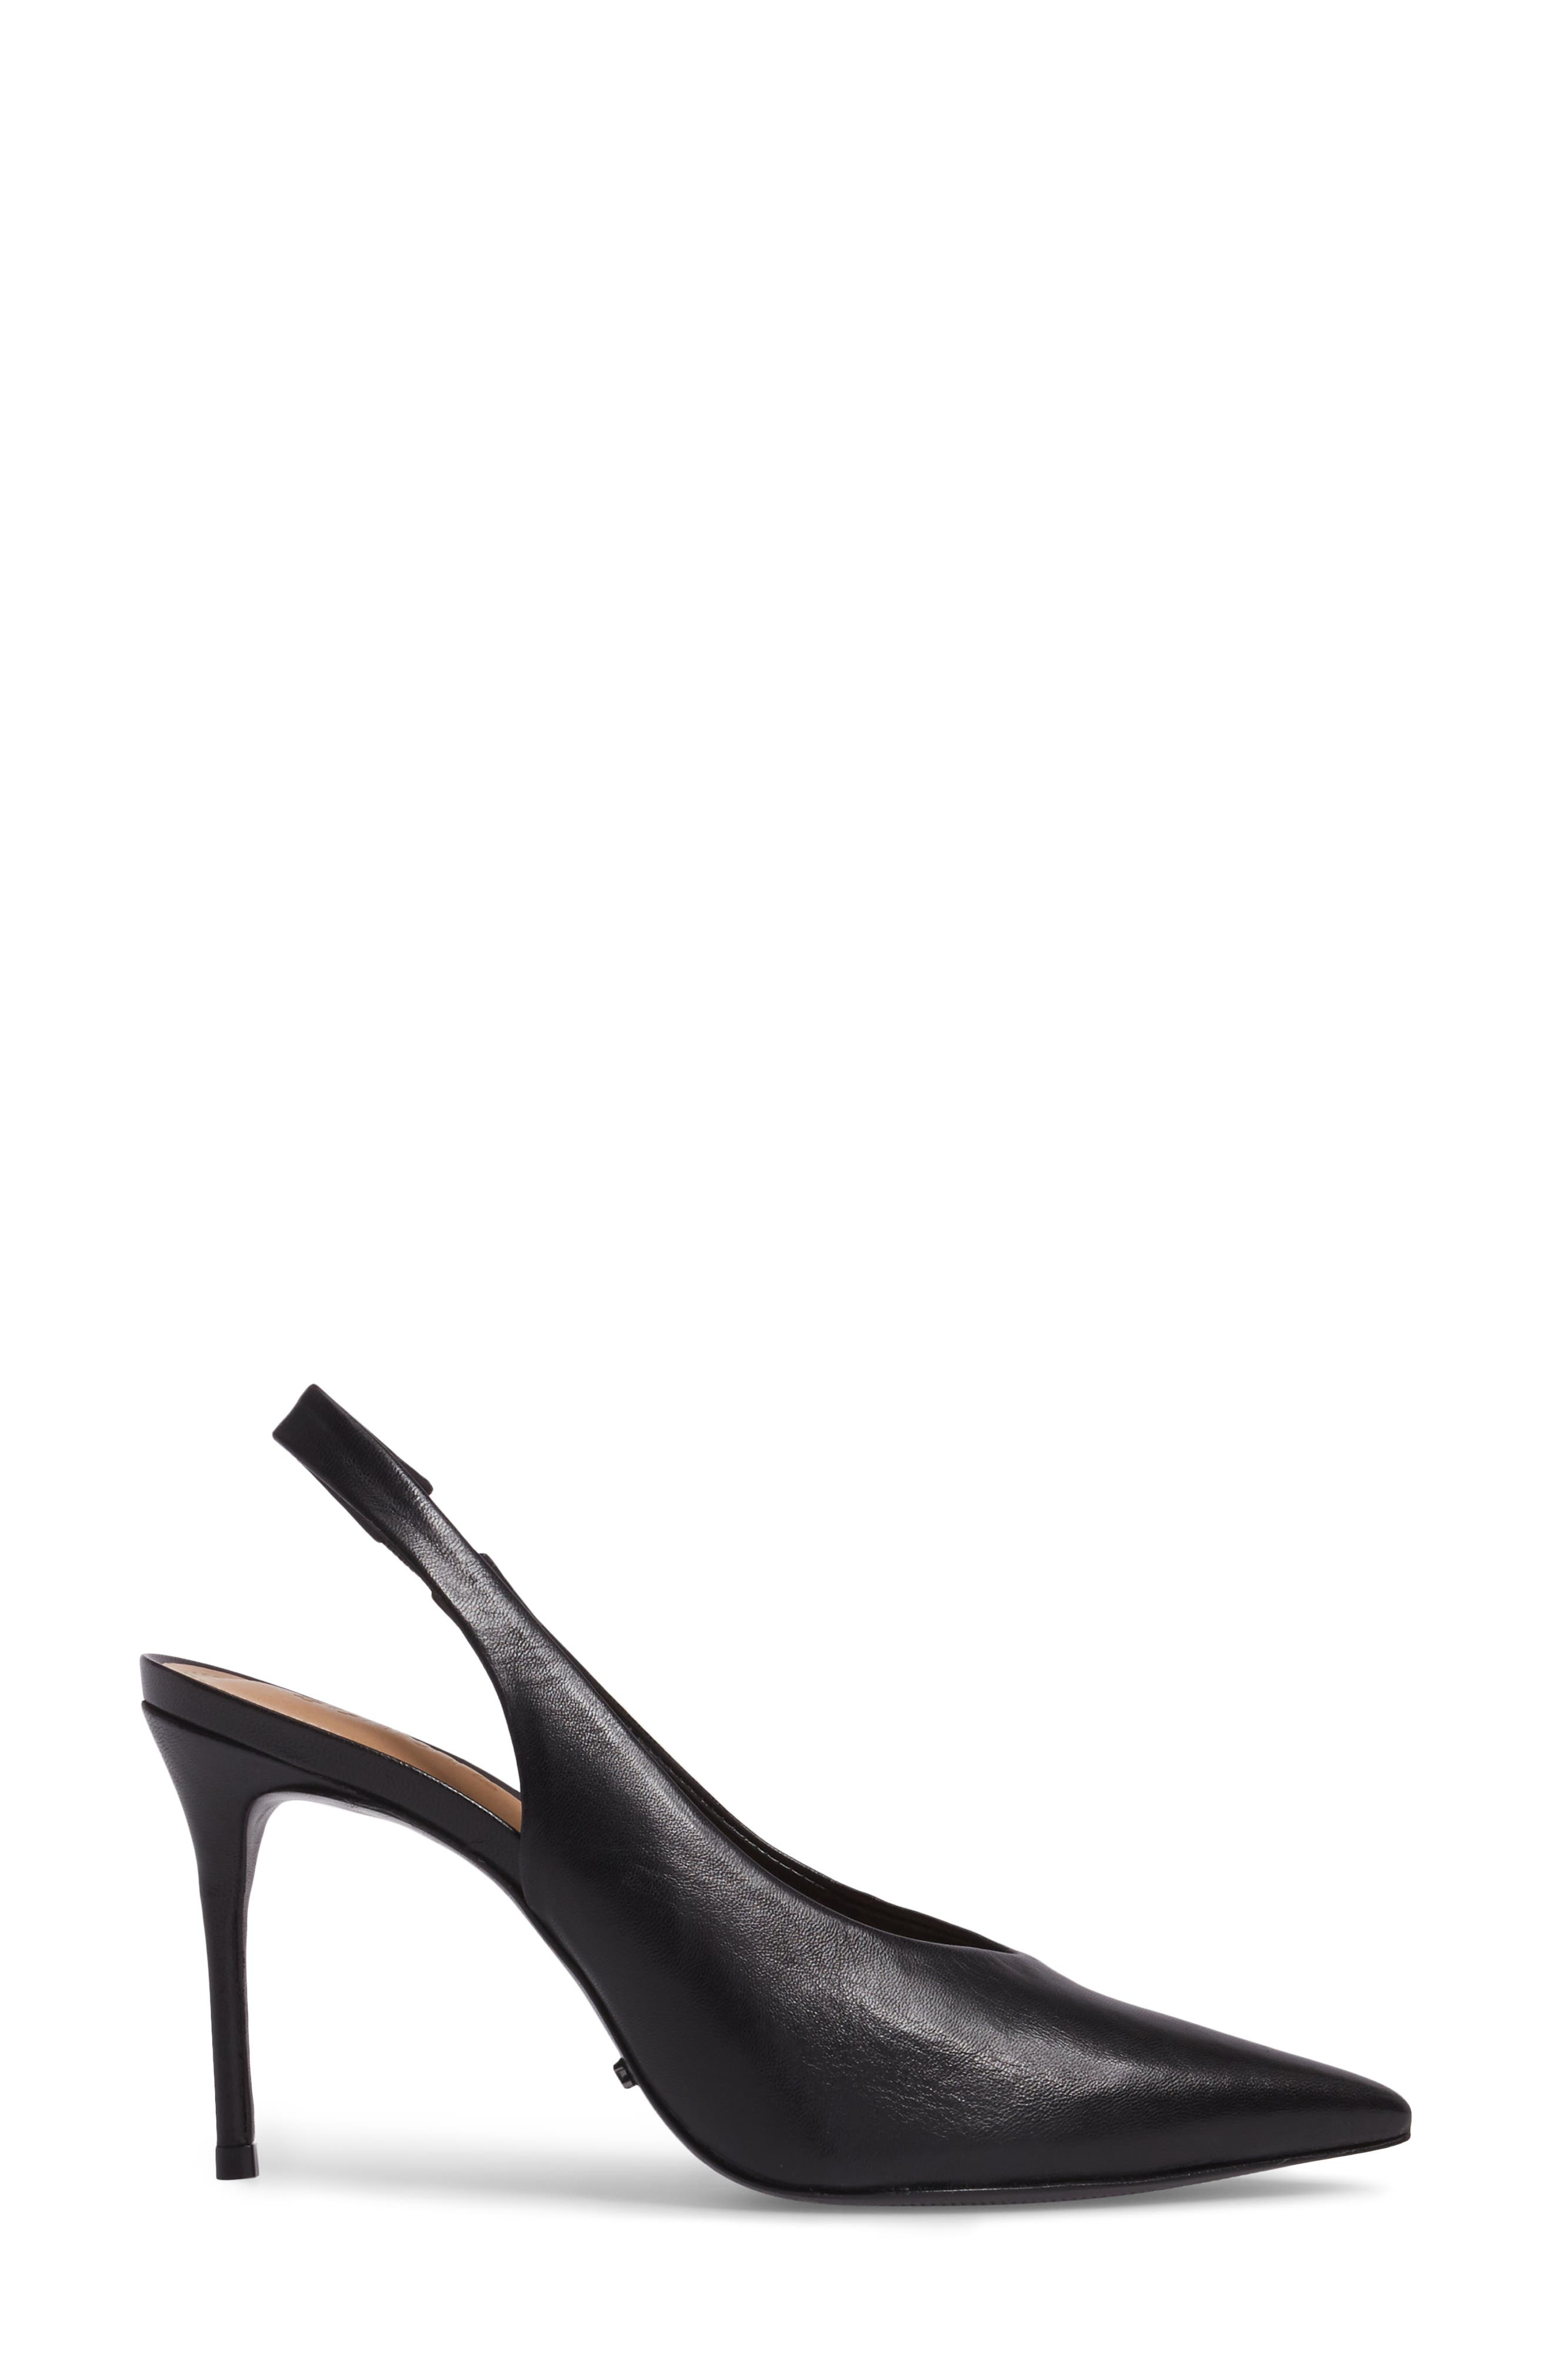 Phisalis Slingback Pump,                             Alternate thumbnail 3, color,                             Black Mestico Leather